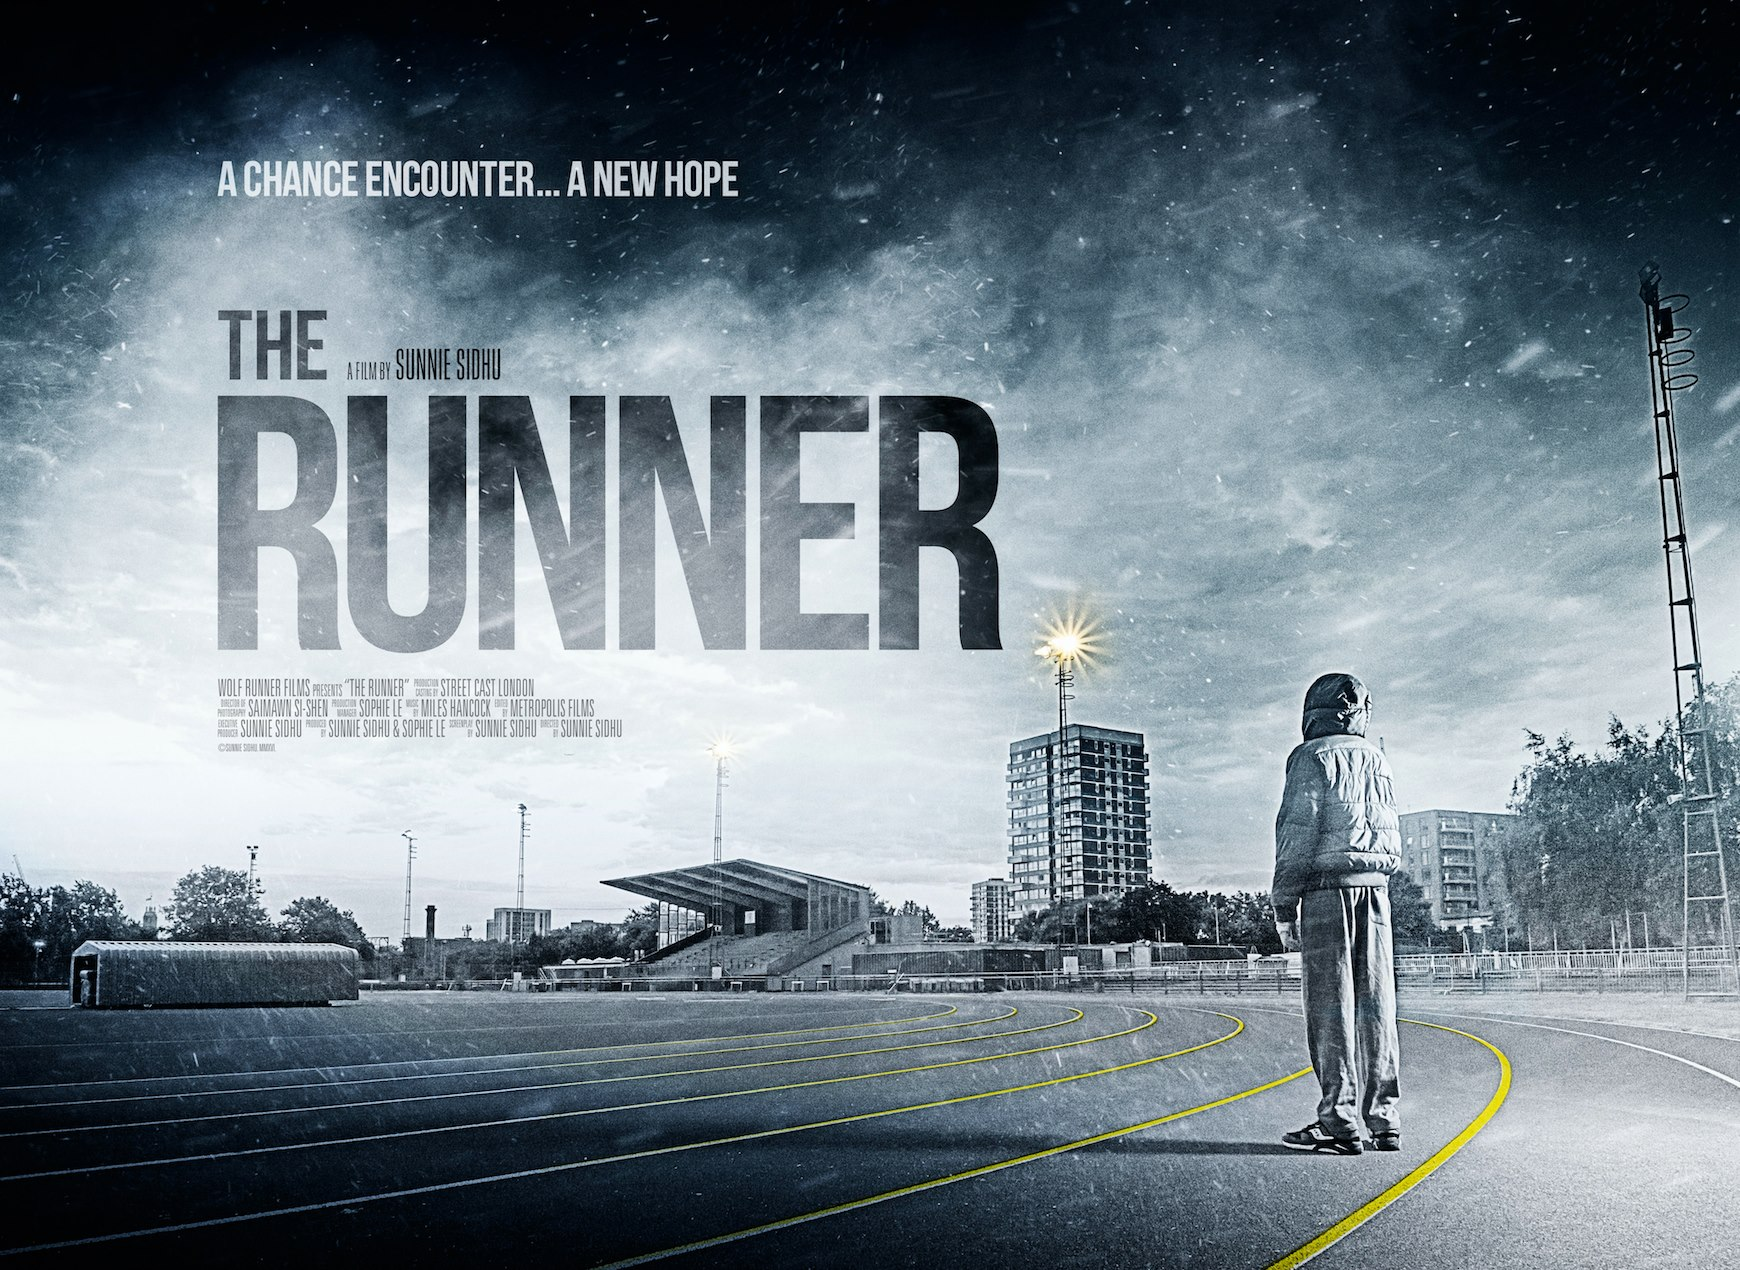 The Runner Trailer design by C&C Short Drama 2016